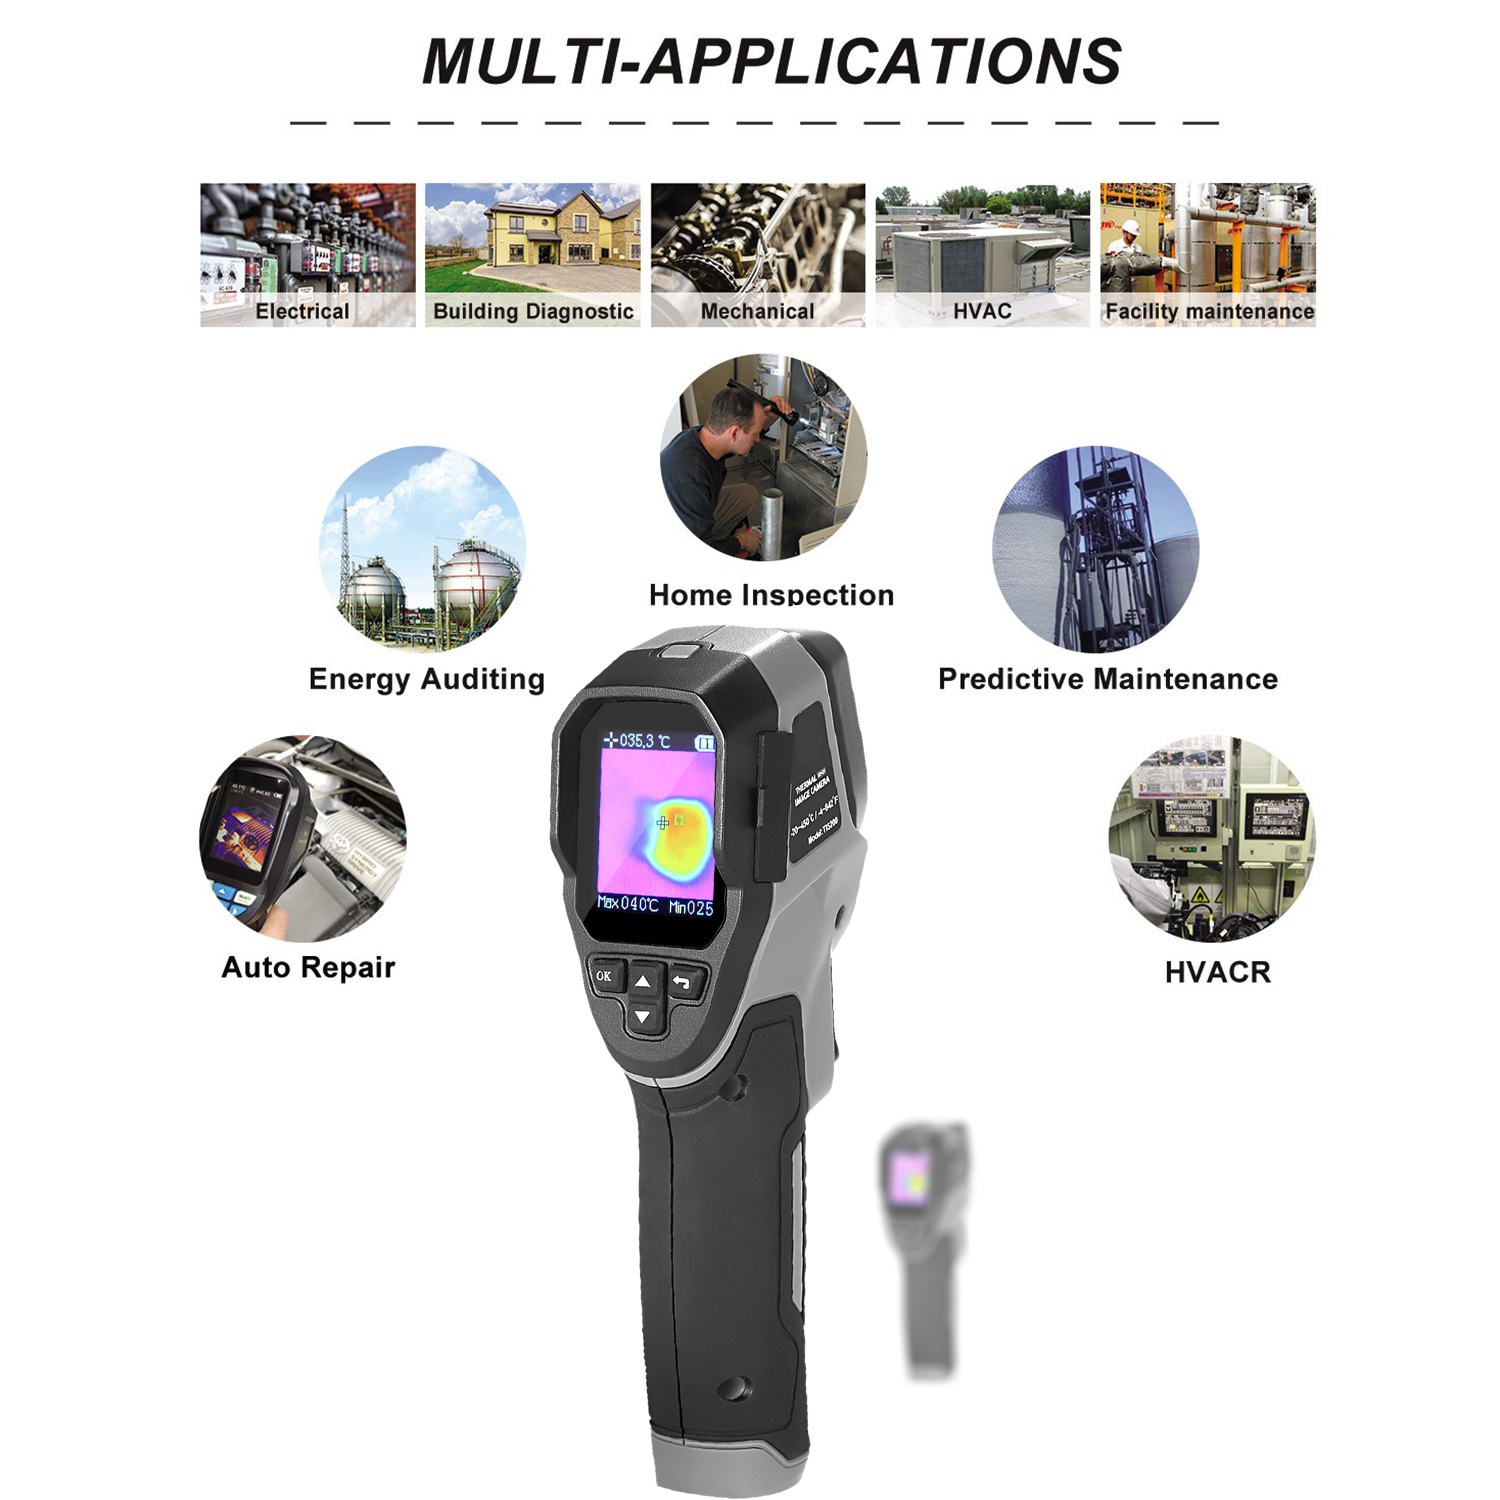 Mini Handheld Thermal Camera TFT Imaging Devices With LCD Display For Imaging Camera 3